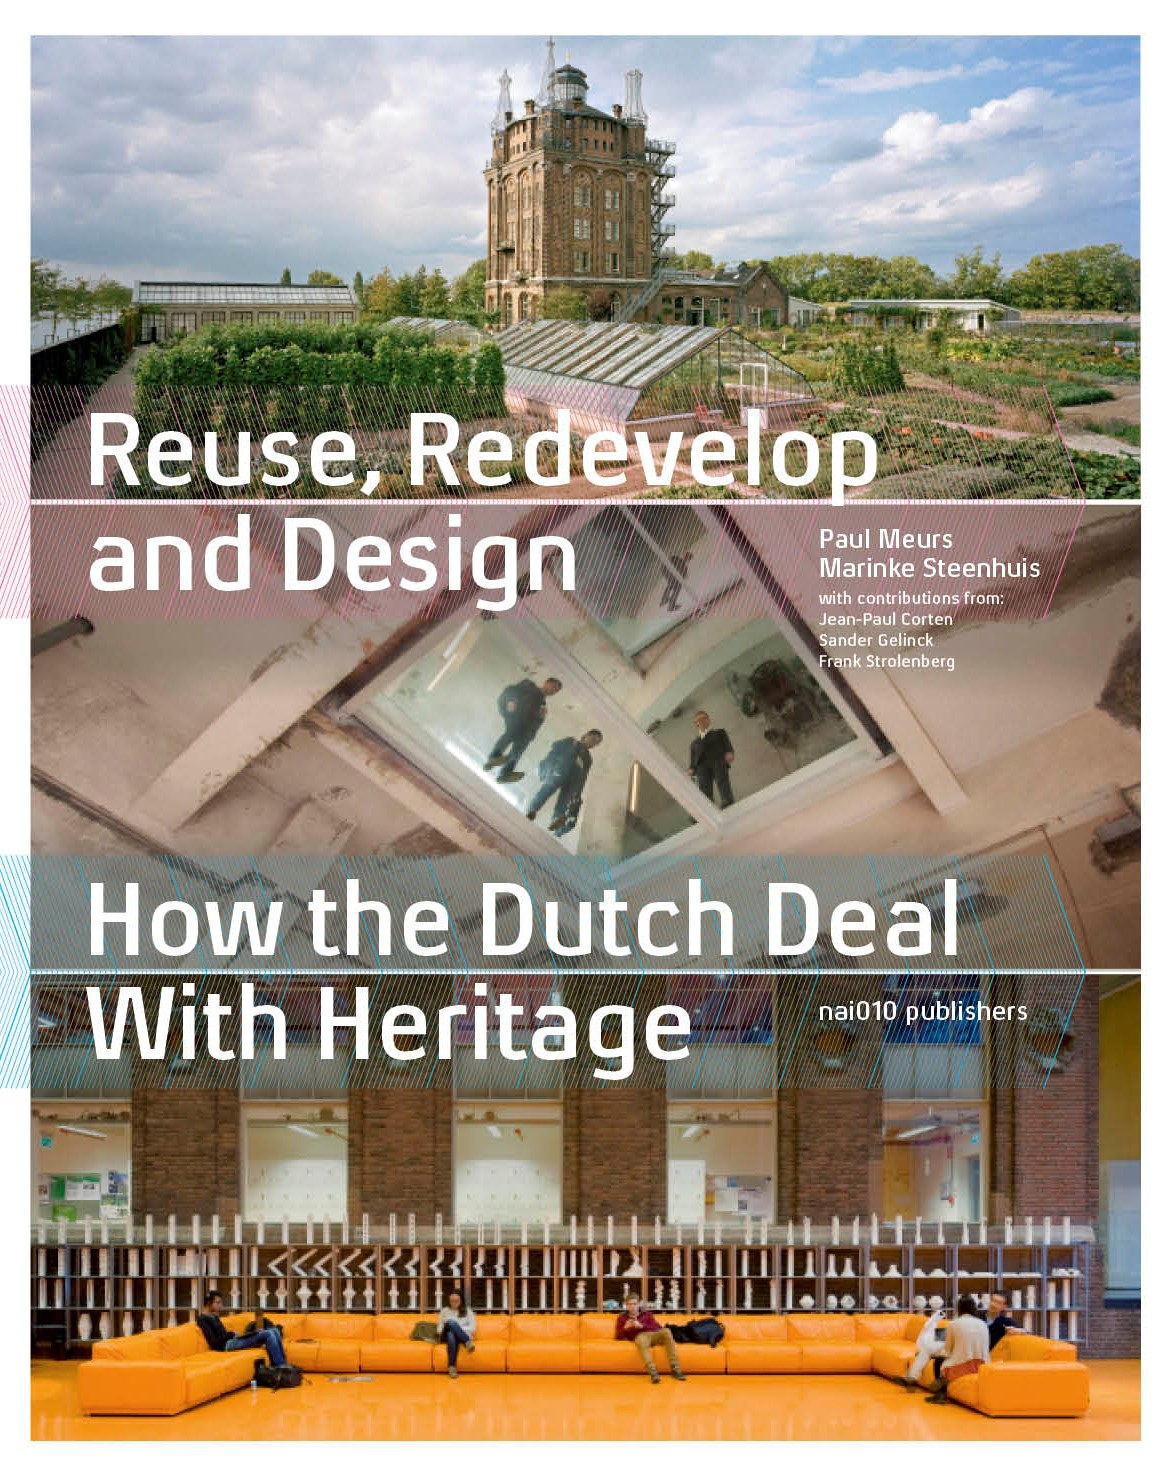 Reuse, Redevelop and Design (e-book)